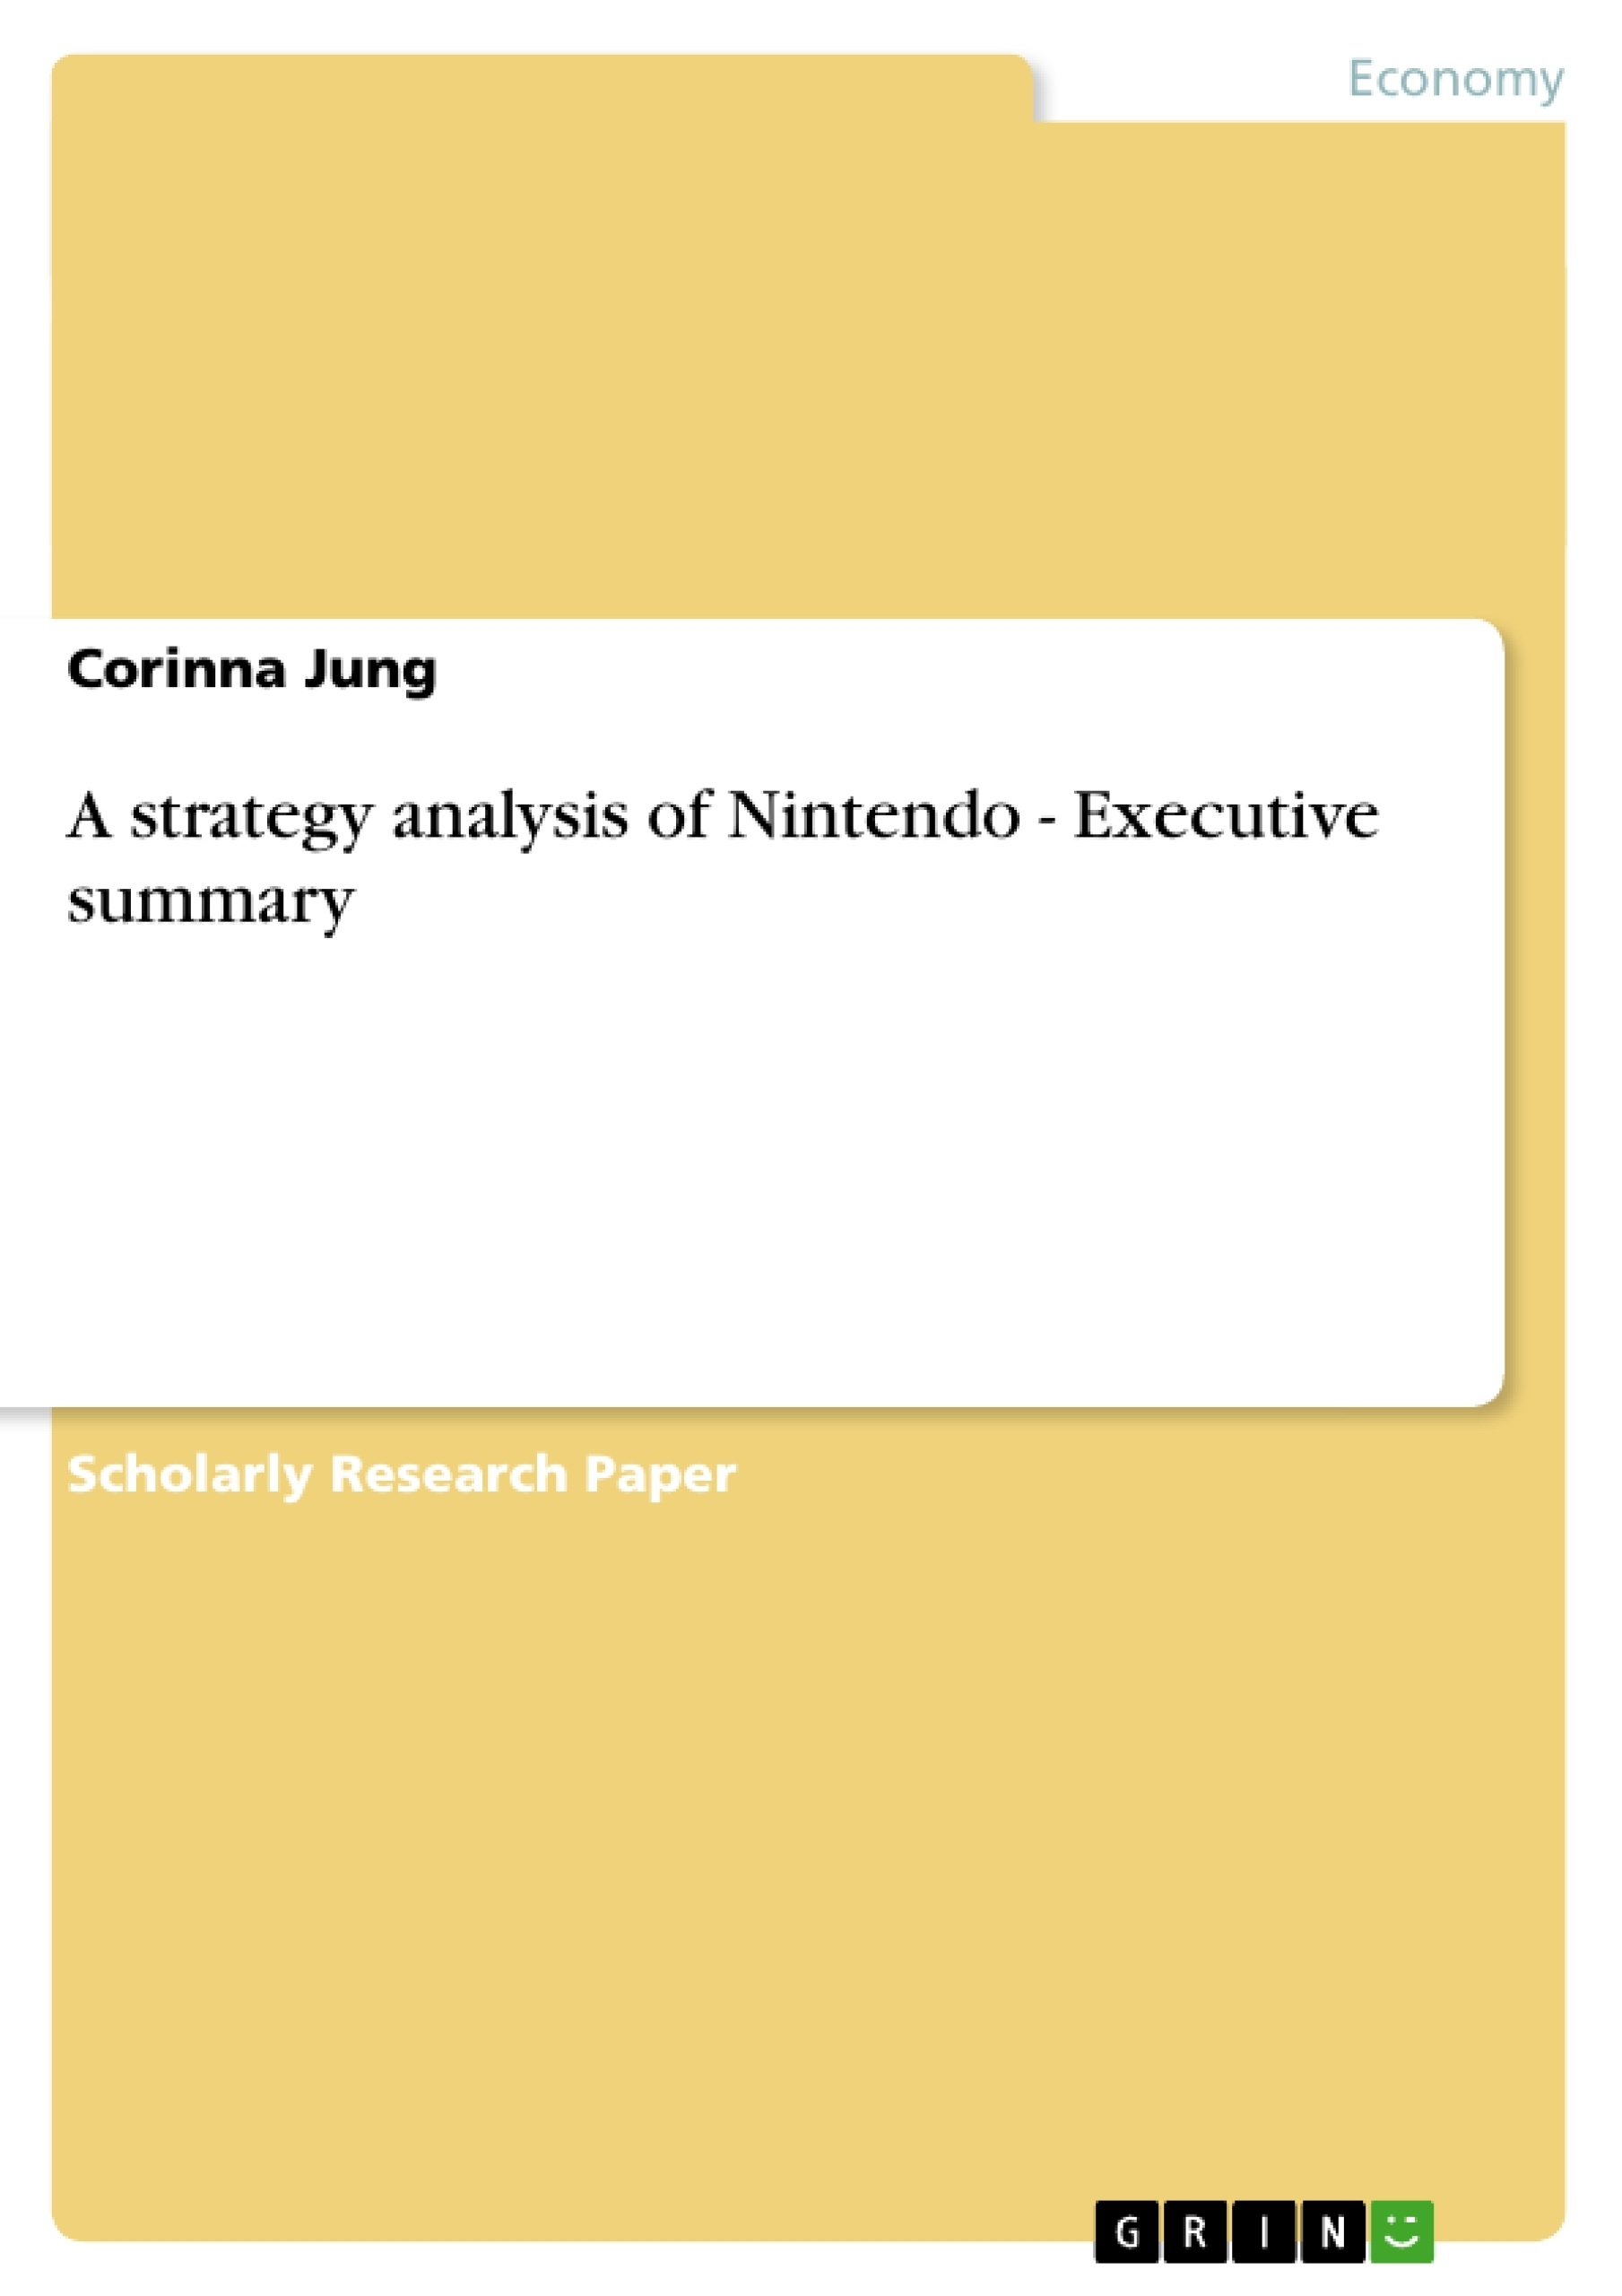 Title: A strategy analysis of Nintendo - Executive summary